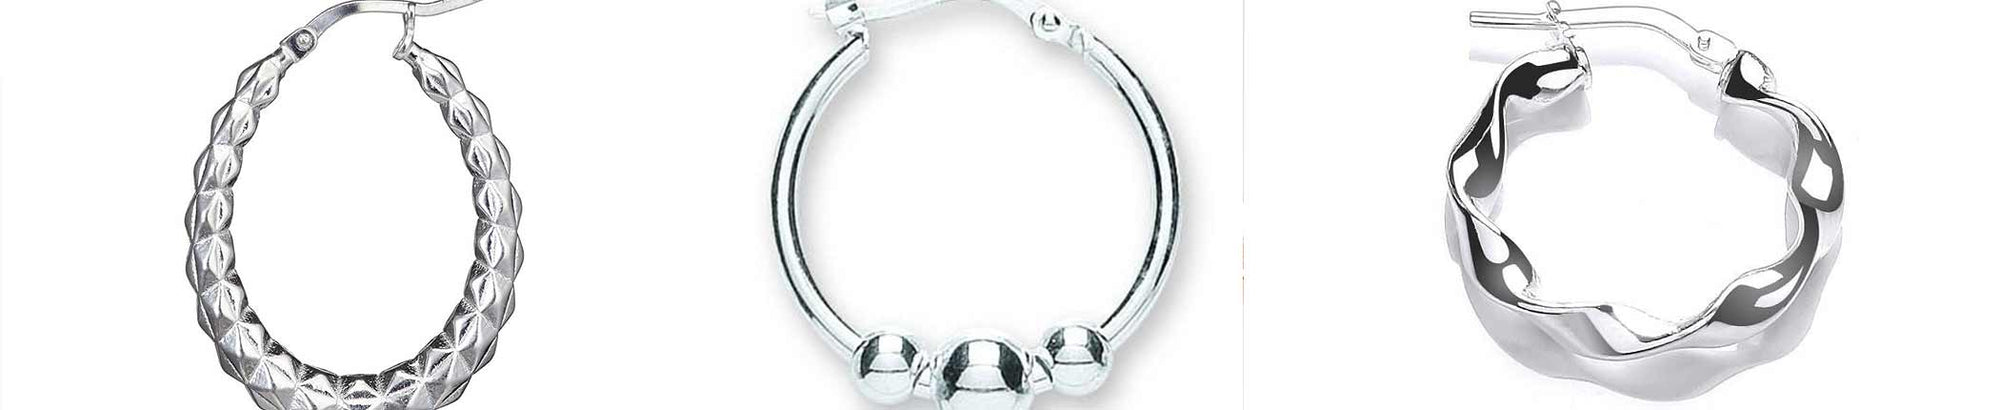 Quiz: Which Sterling Silver Hoop Earrings Suit Your Taste in Jewellery?